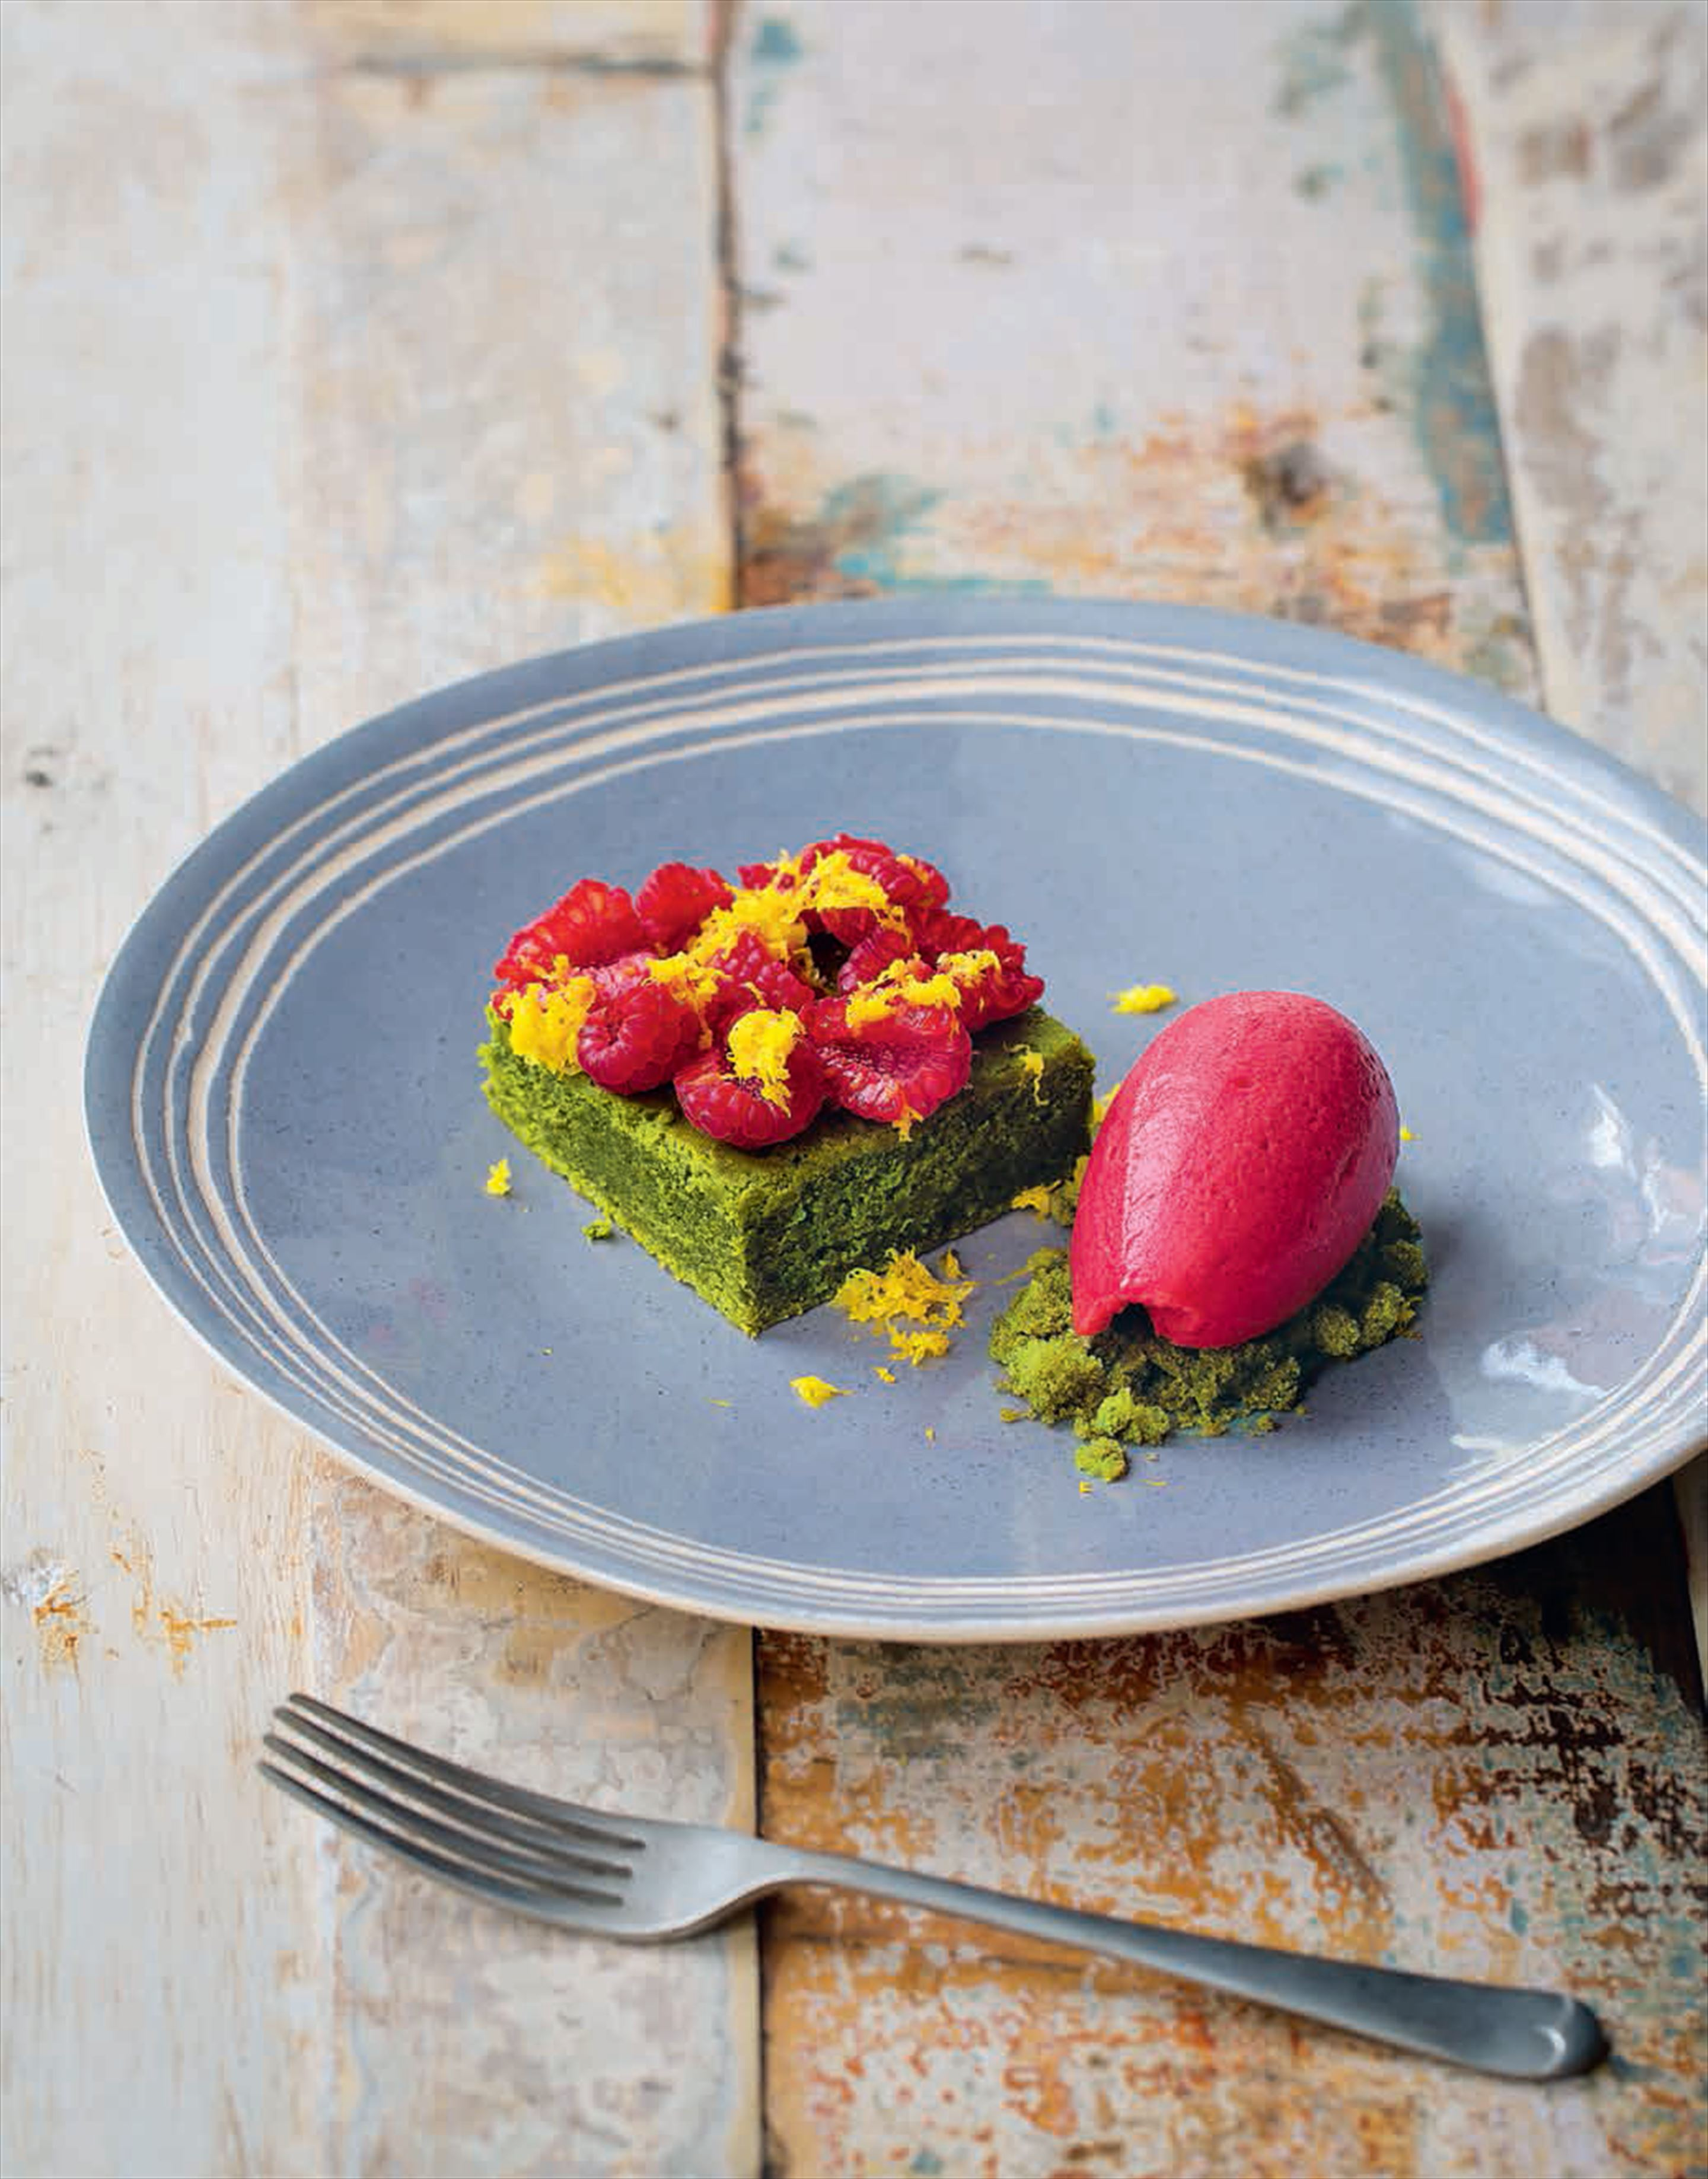 Green tea cake, yuzu and raspberries